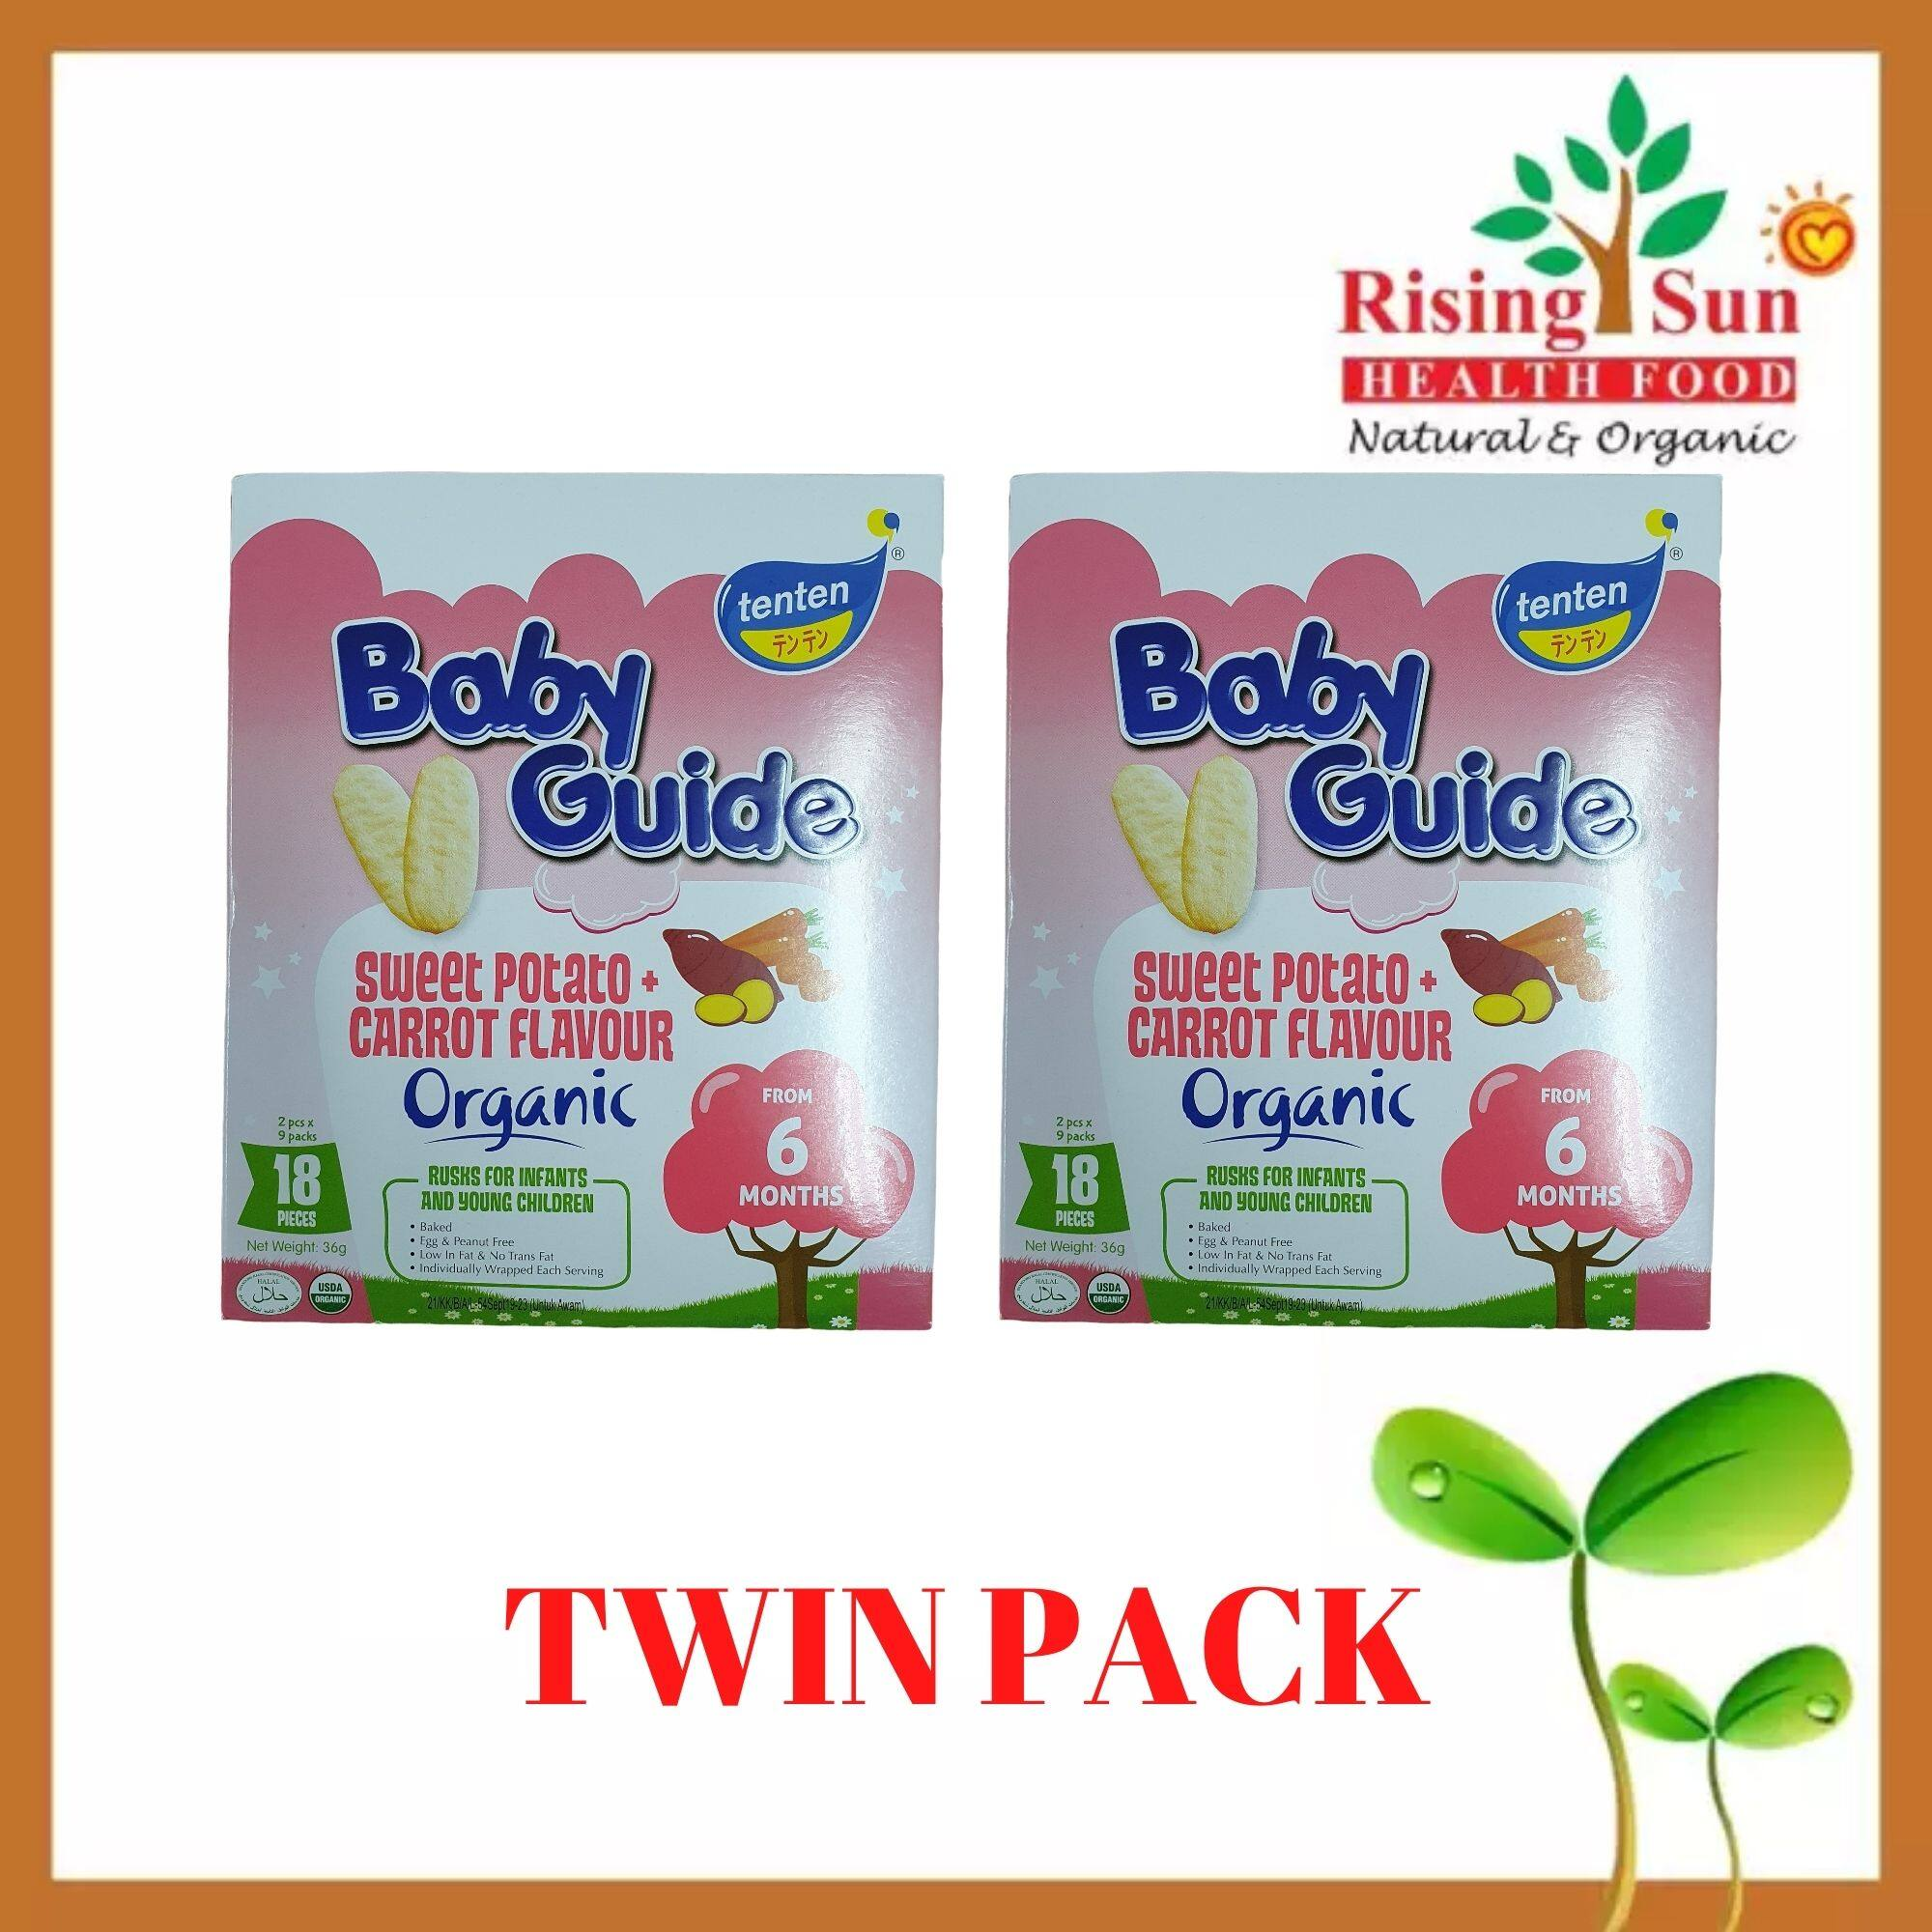 Baby Guide Sweet Potato Carrot Flavour Organic (2pcs x 9 packs) 36g Twin Pack